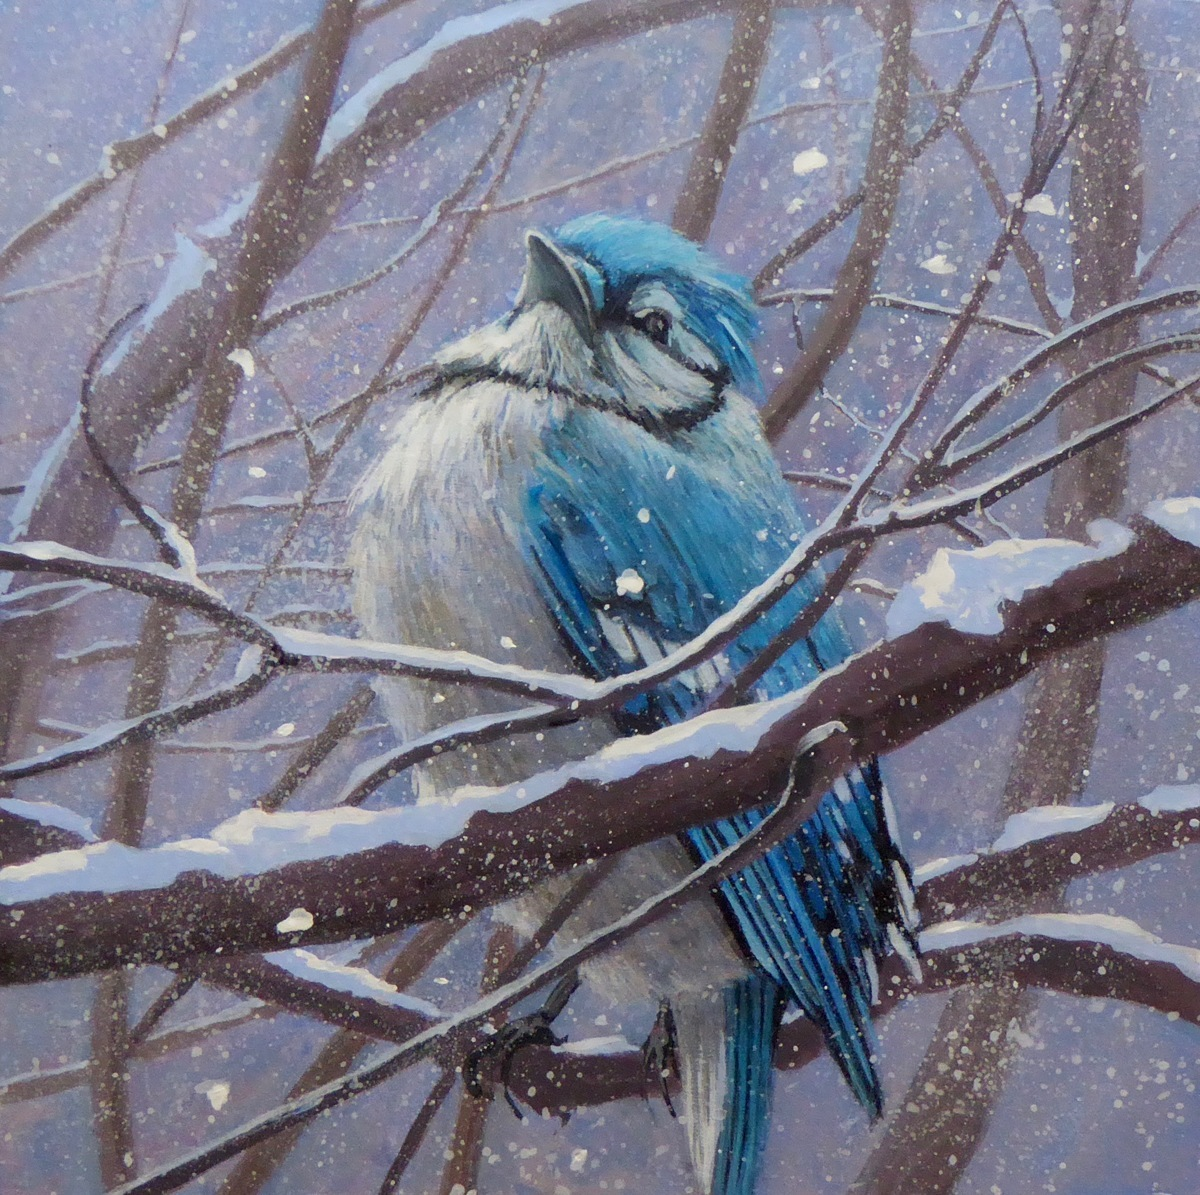 Bluejay in a Snowstorm (large view)